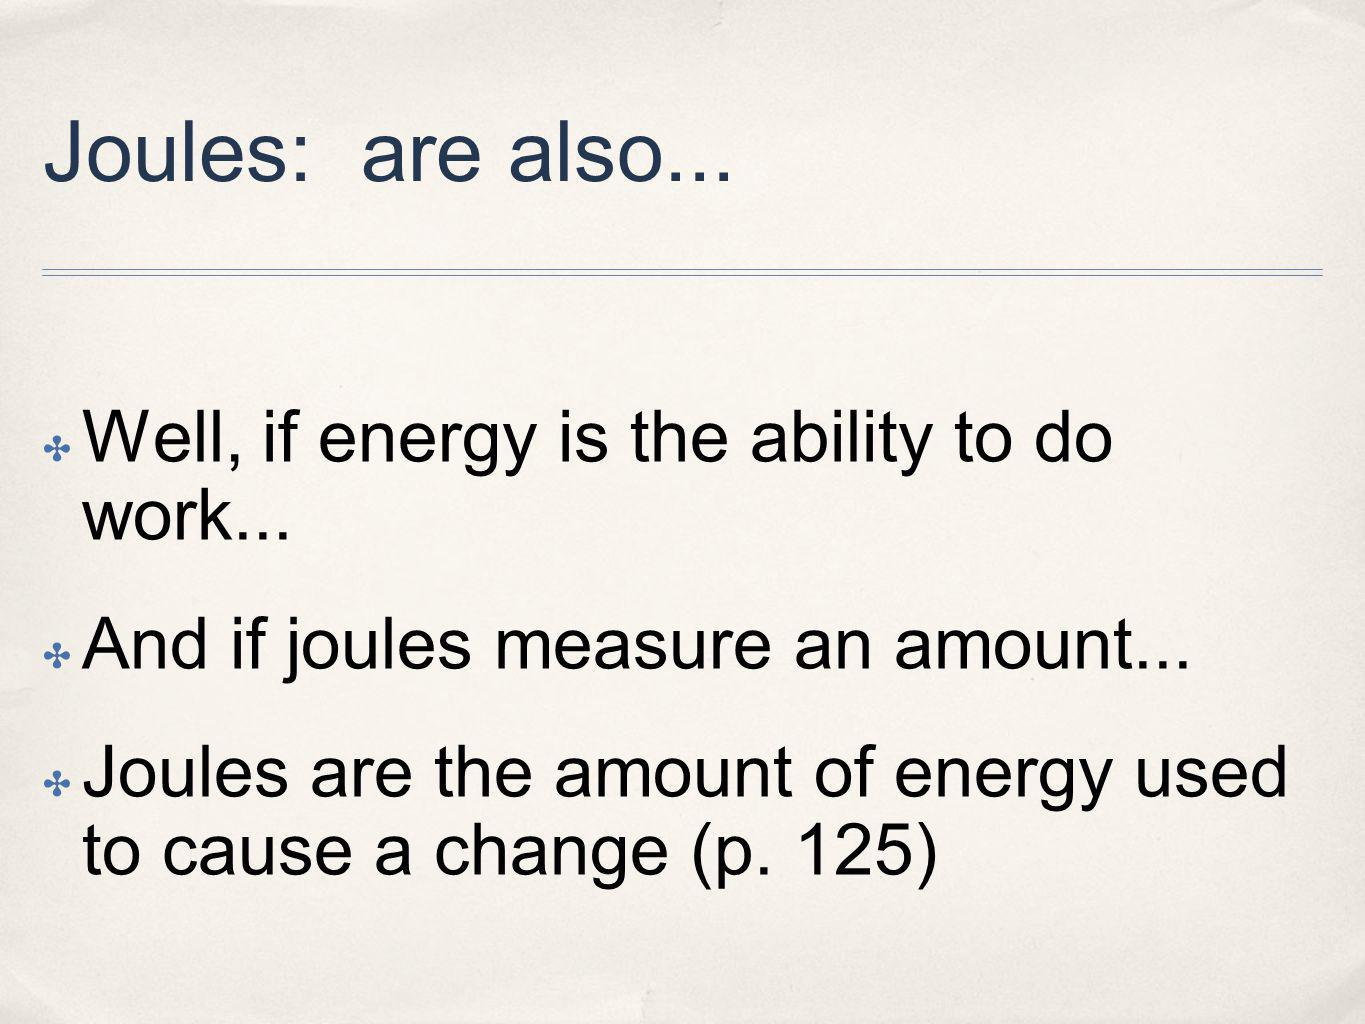 Joules: are also... Well, if energy is the ability to do work...